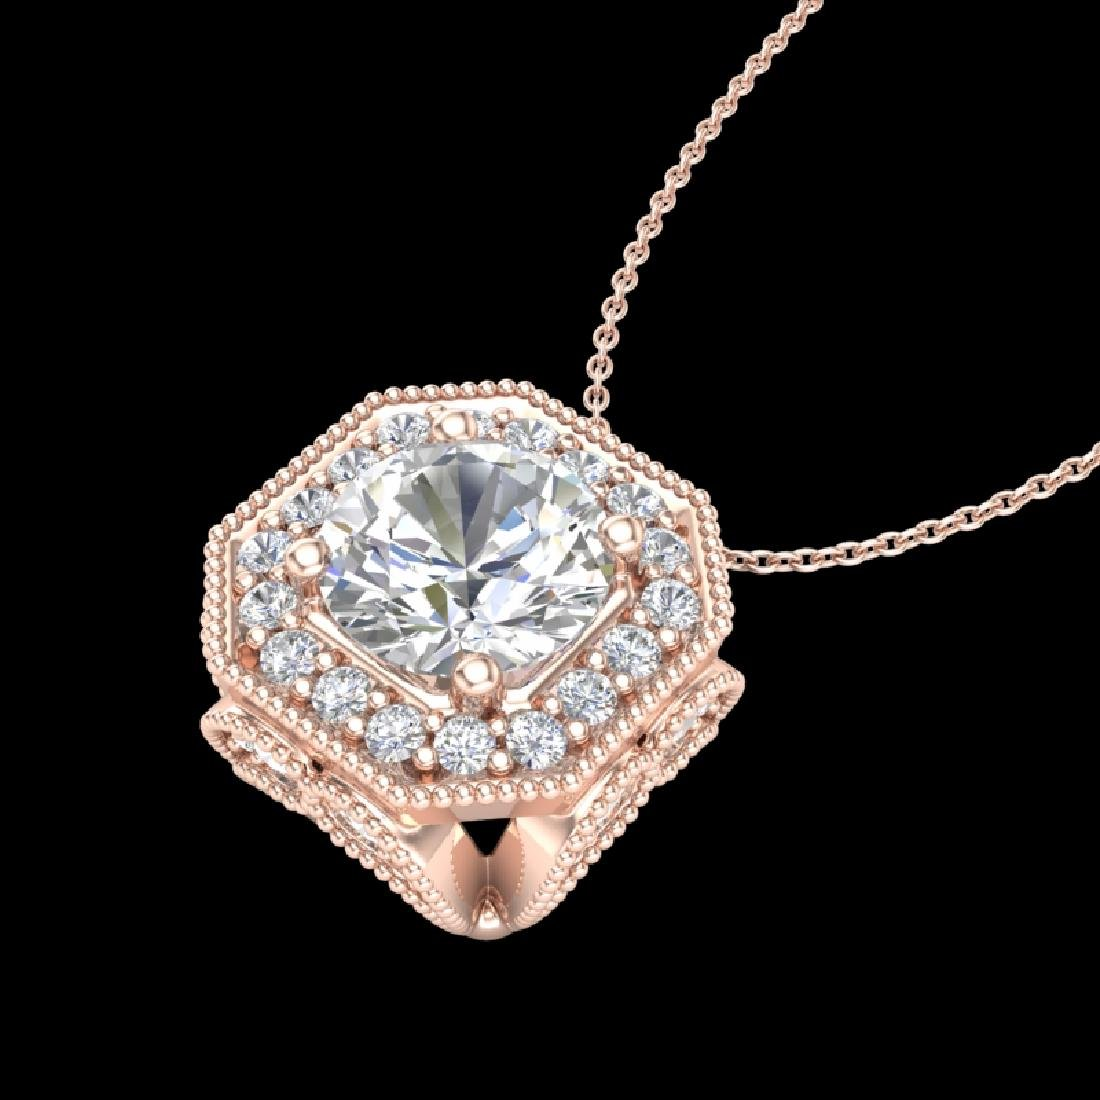 1.54 CTW VS/SI Diamond Solitaire Art Deco Necklace 18K